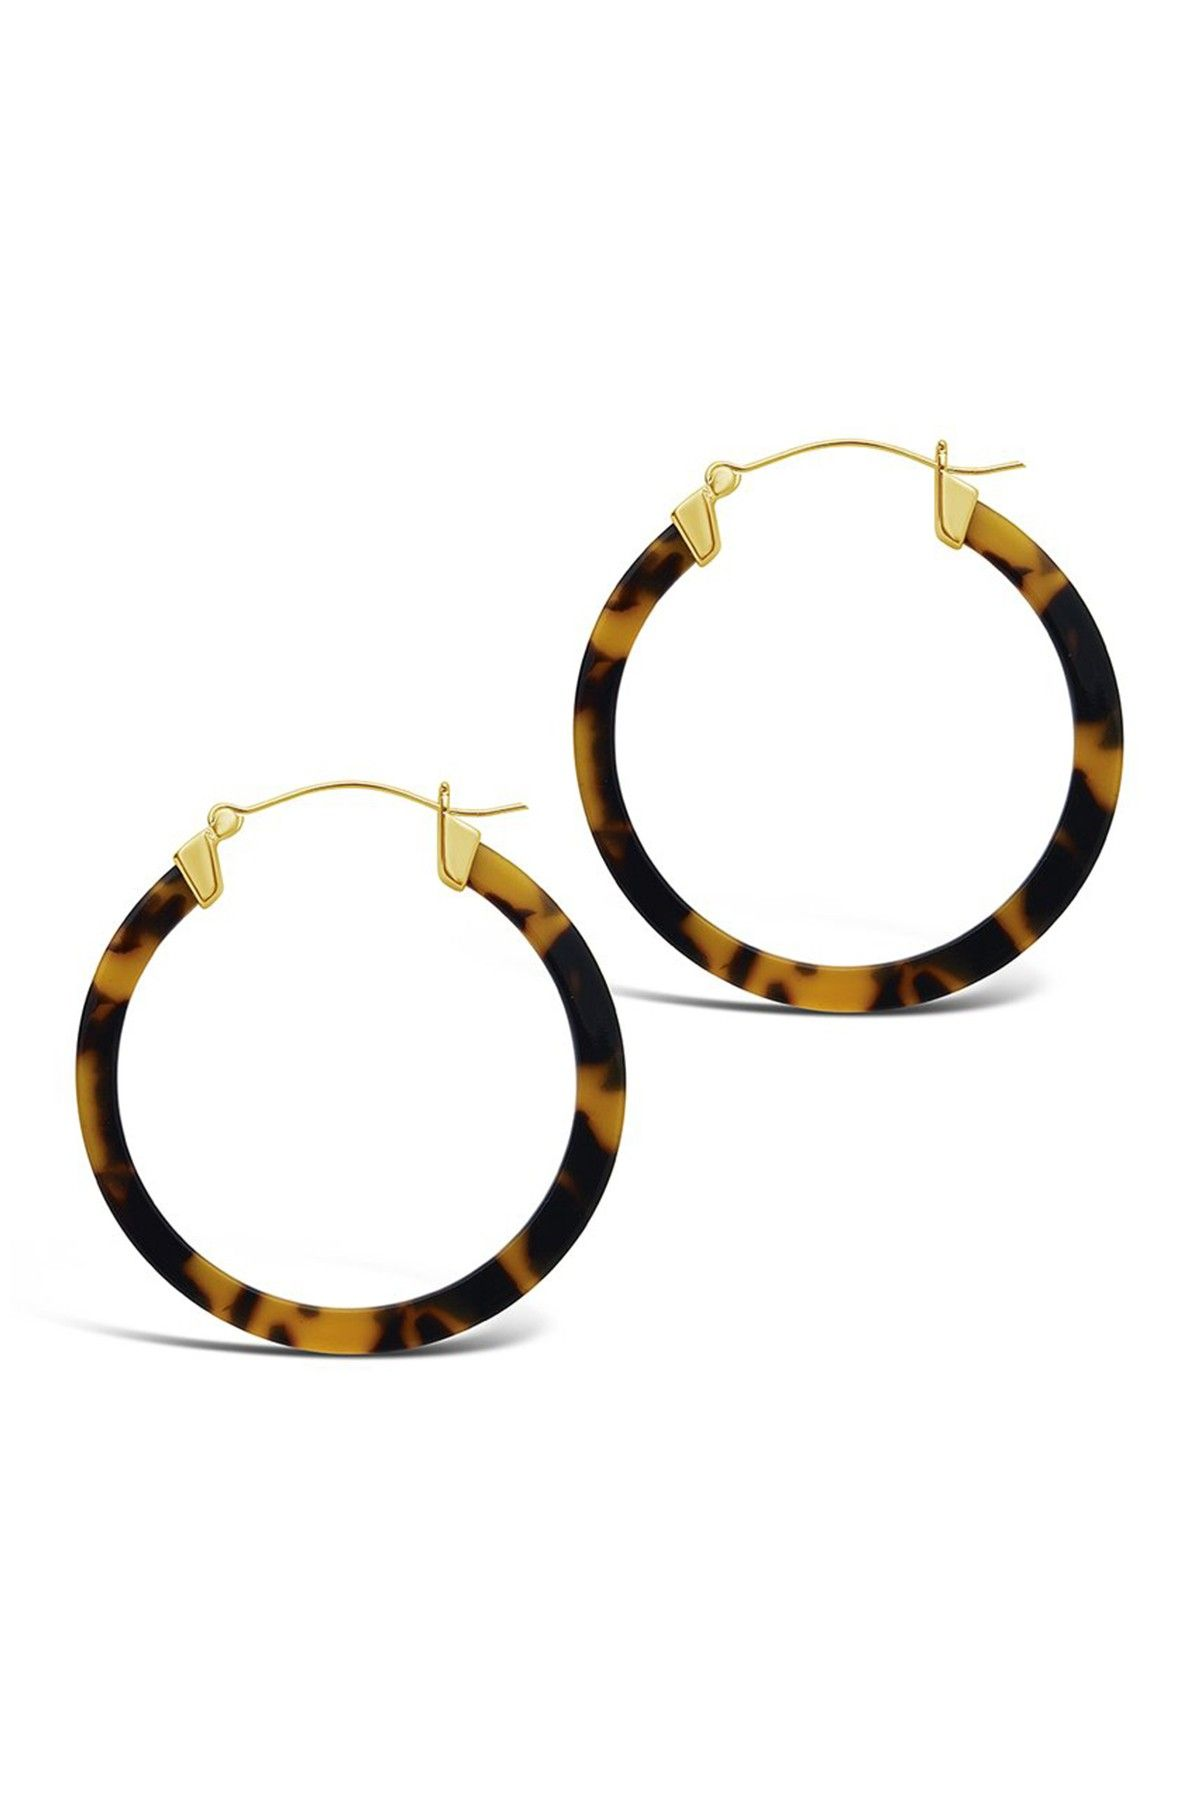 fe1f848f0 Sterling Forever - 50mm Tortoise Acetate Hoop Earrings is now 56% off. Free  Shipping on orders over $100.